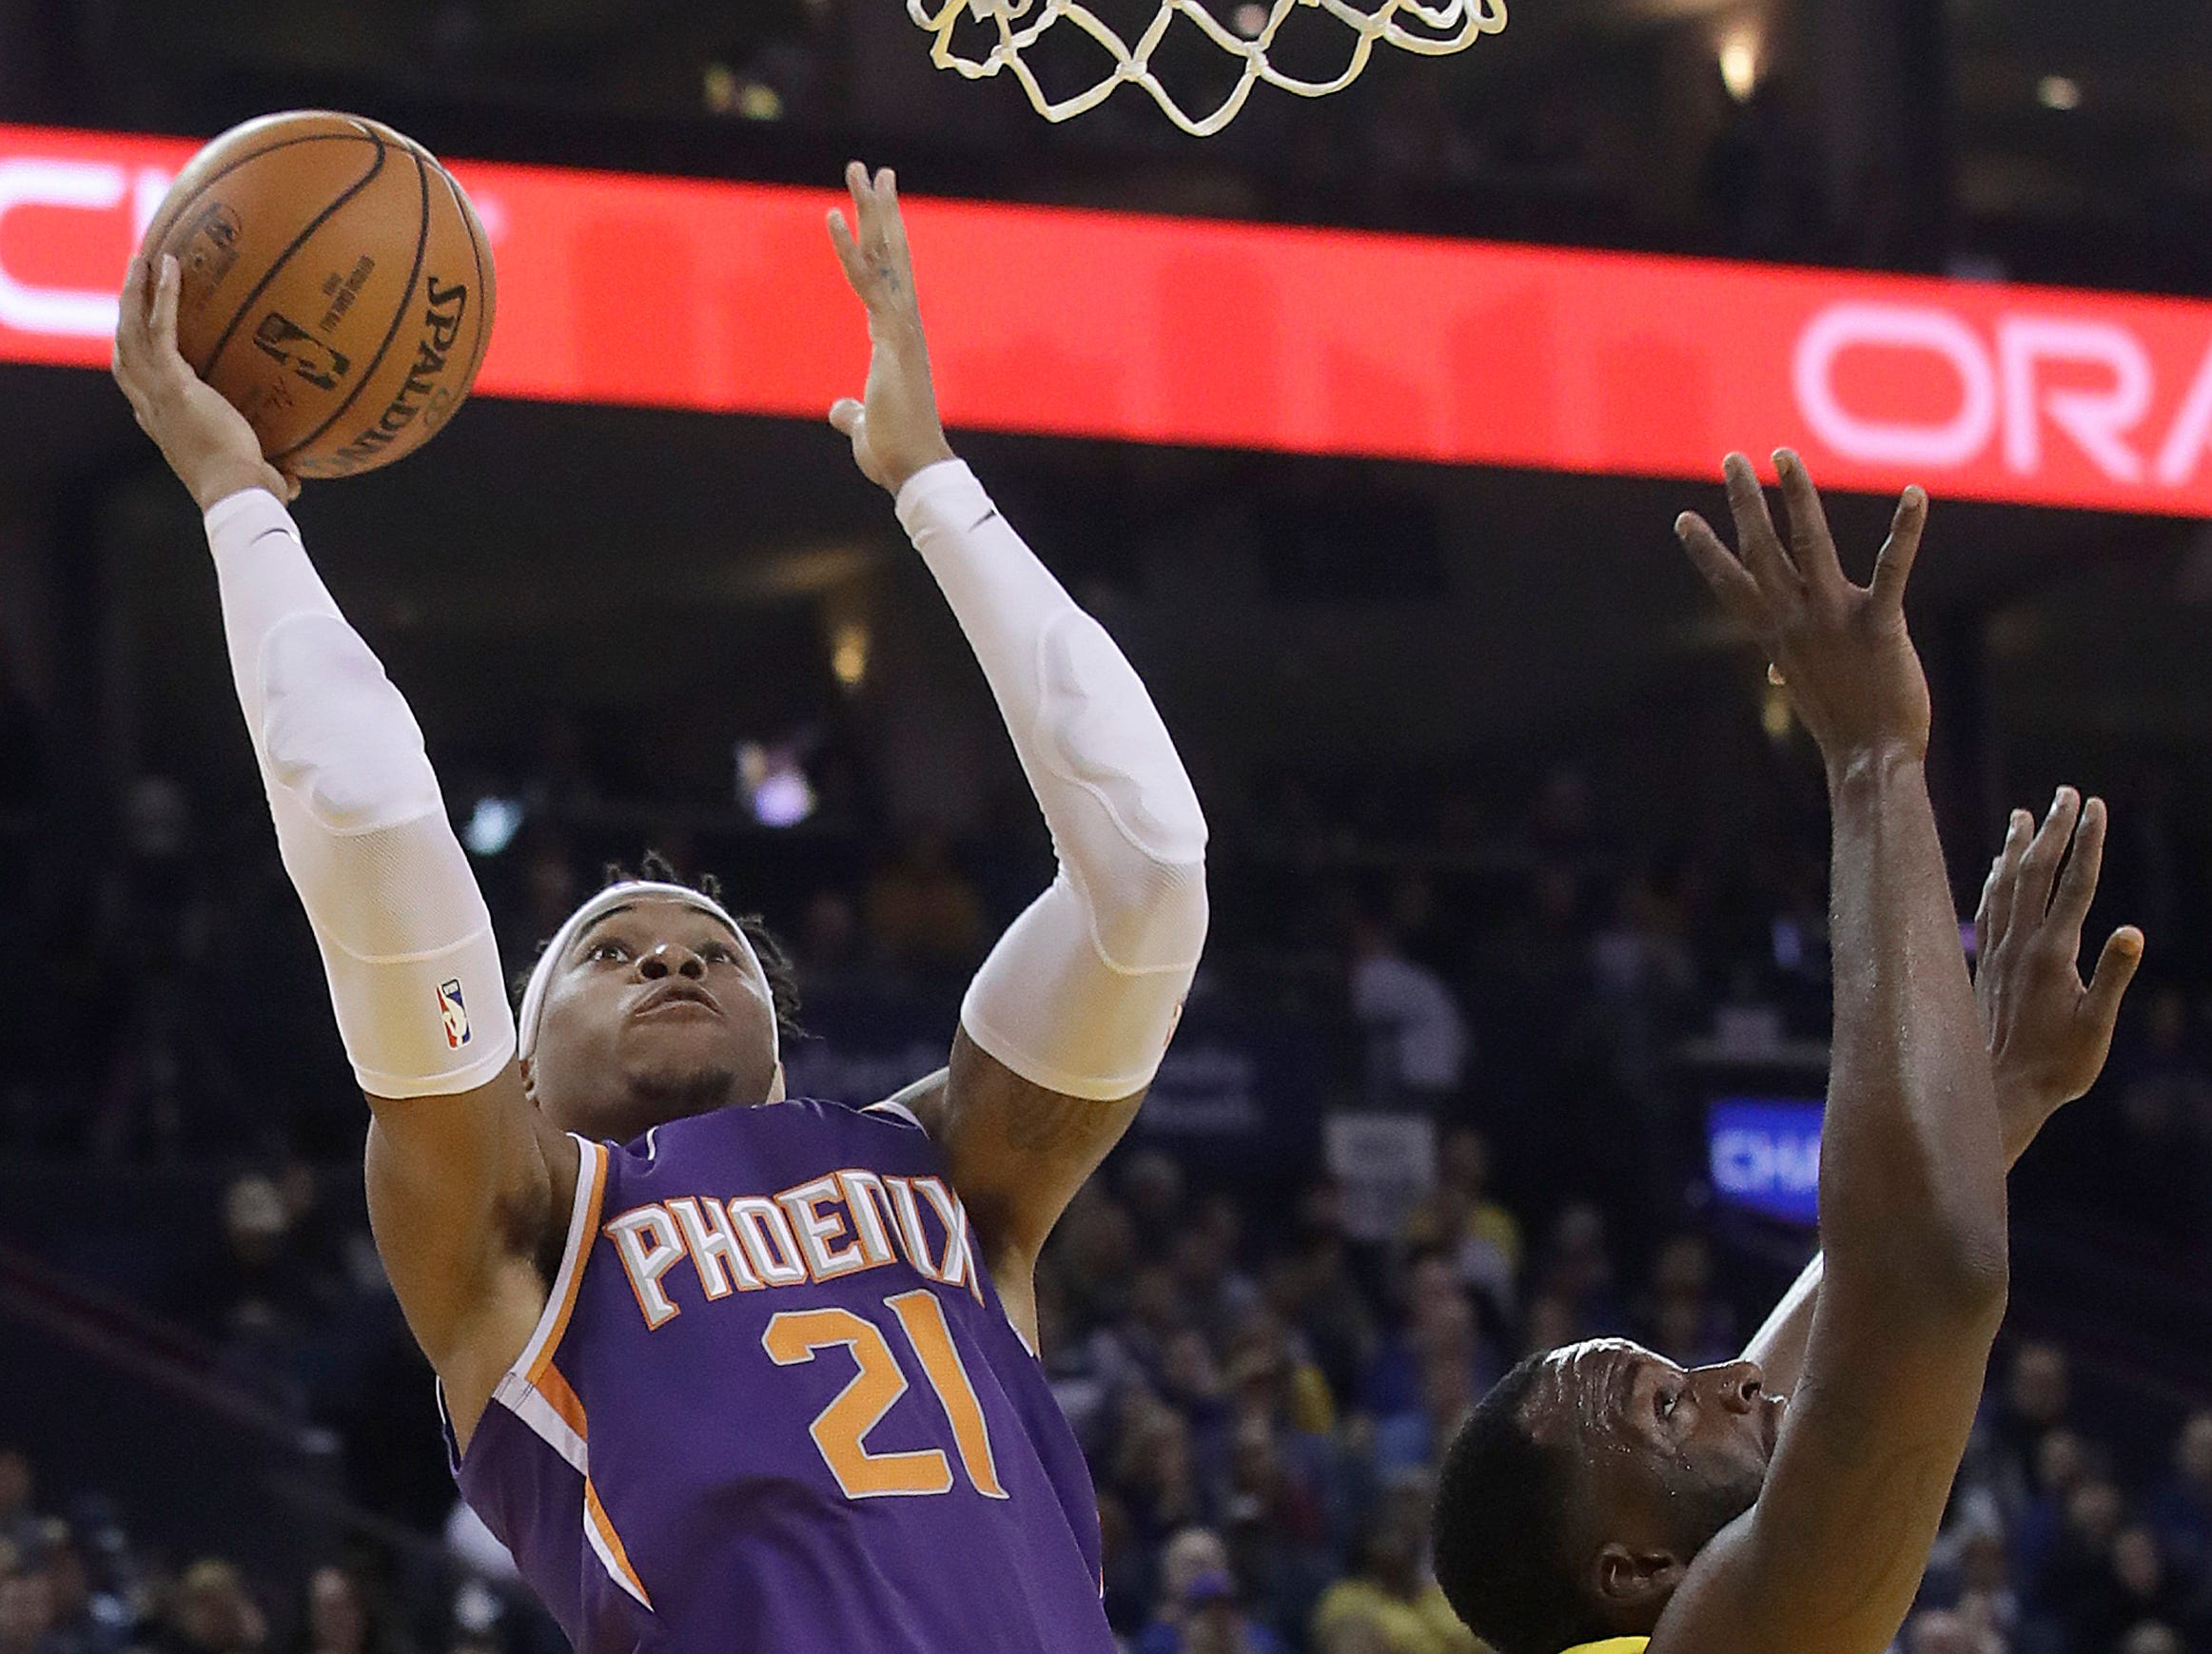 Phoenix Suns forward Richaun Holmes, left, shoots against Golden State Warriors forward Draymond Green, right, during the first half of an NBA basketball game in Oakland, Calif., Sunday, March 10, 2019. (AP Photo/Jeff Chiu)